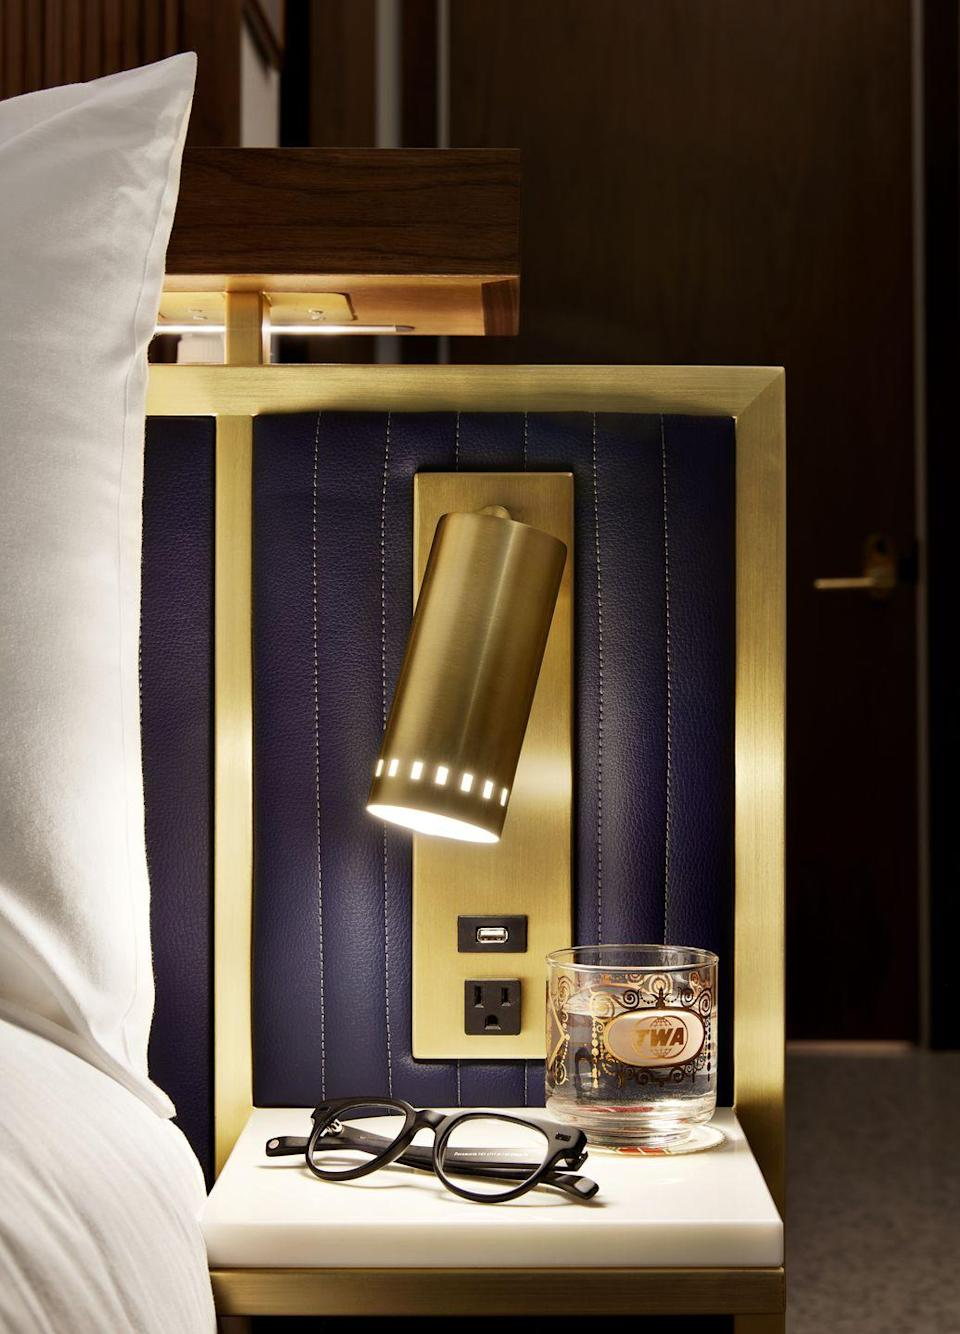 <p>The rooms were designed by New York City firm Stonehill Taylor and have brushed brass and wood accents.</p>